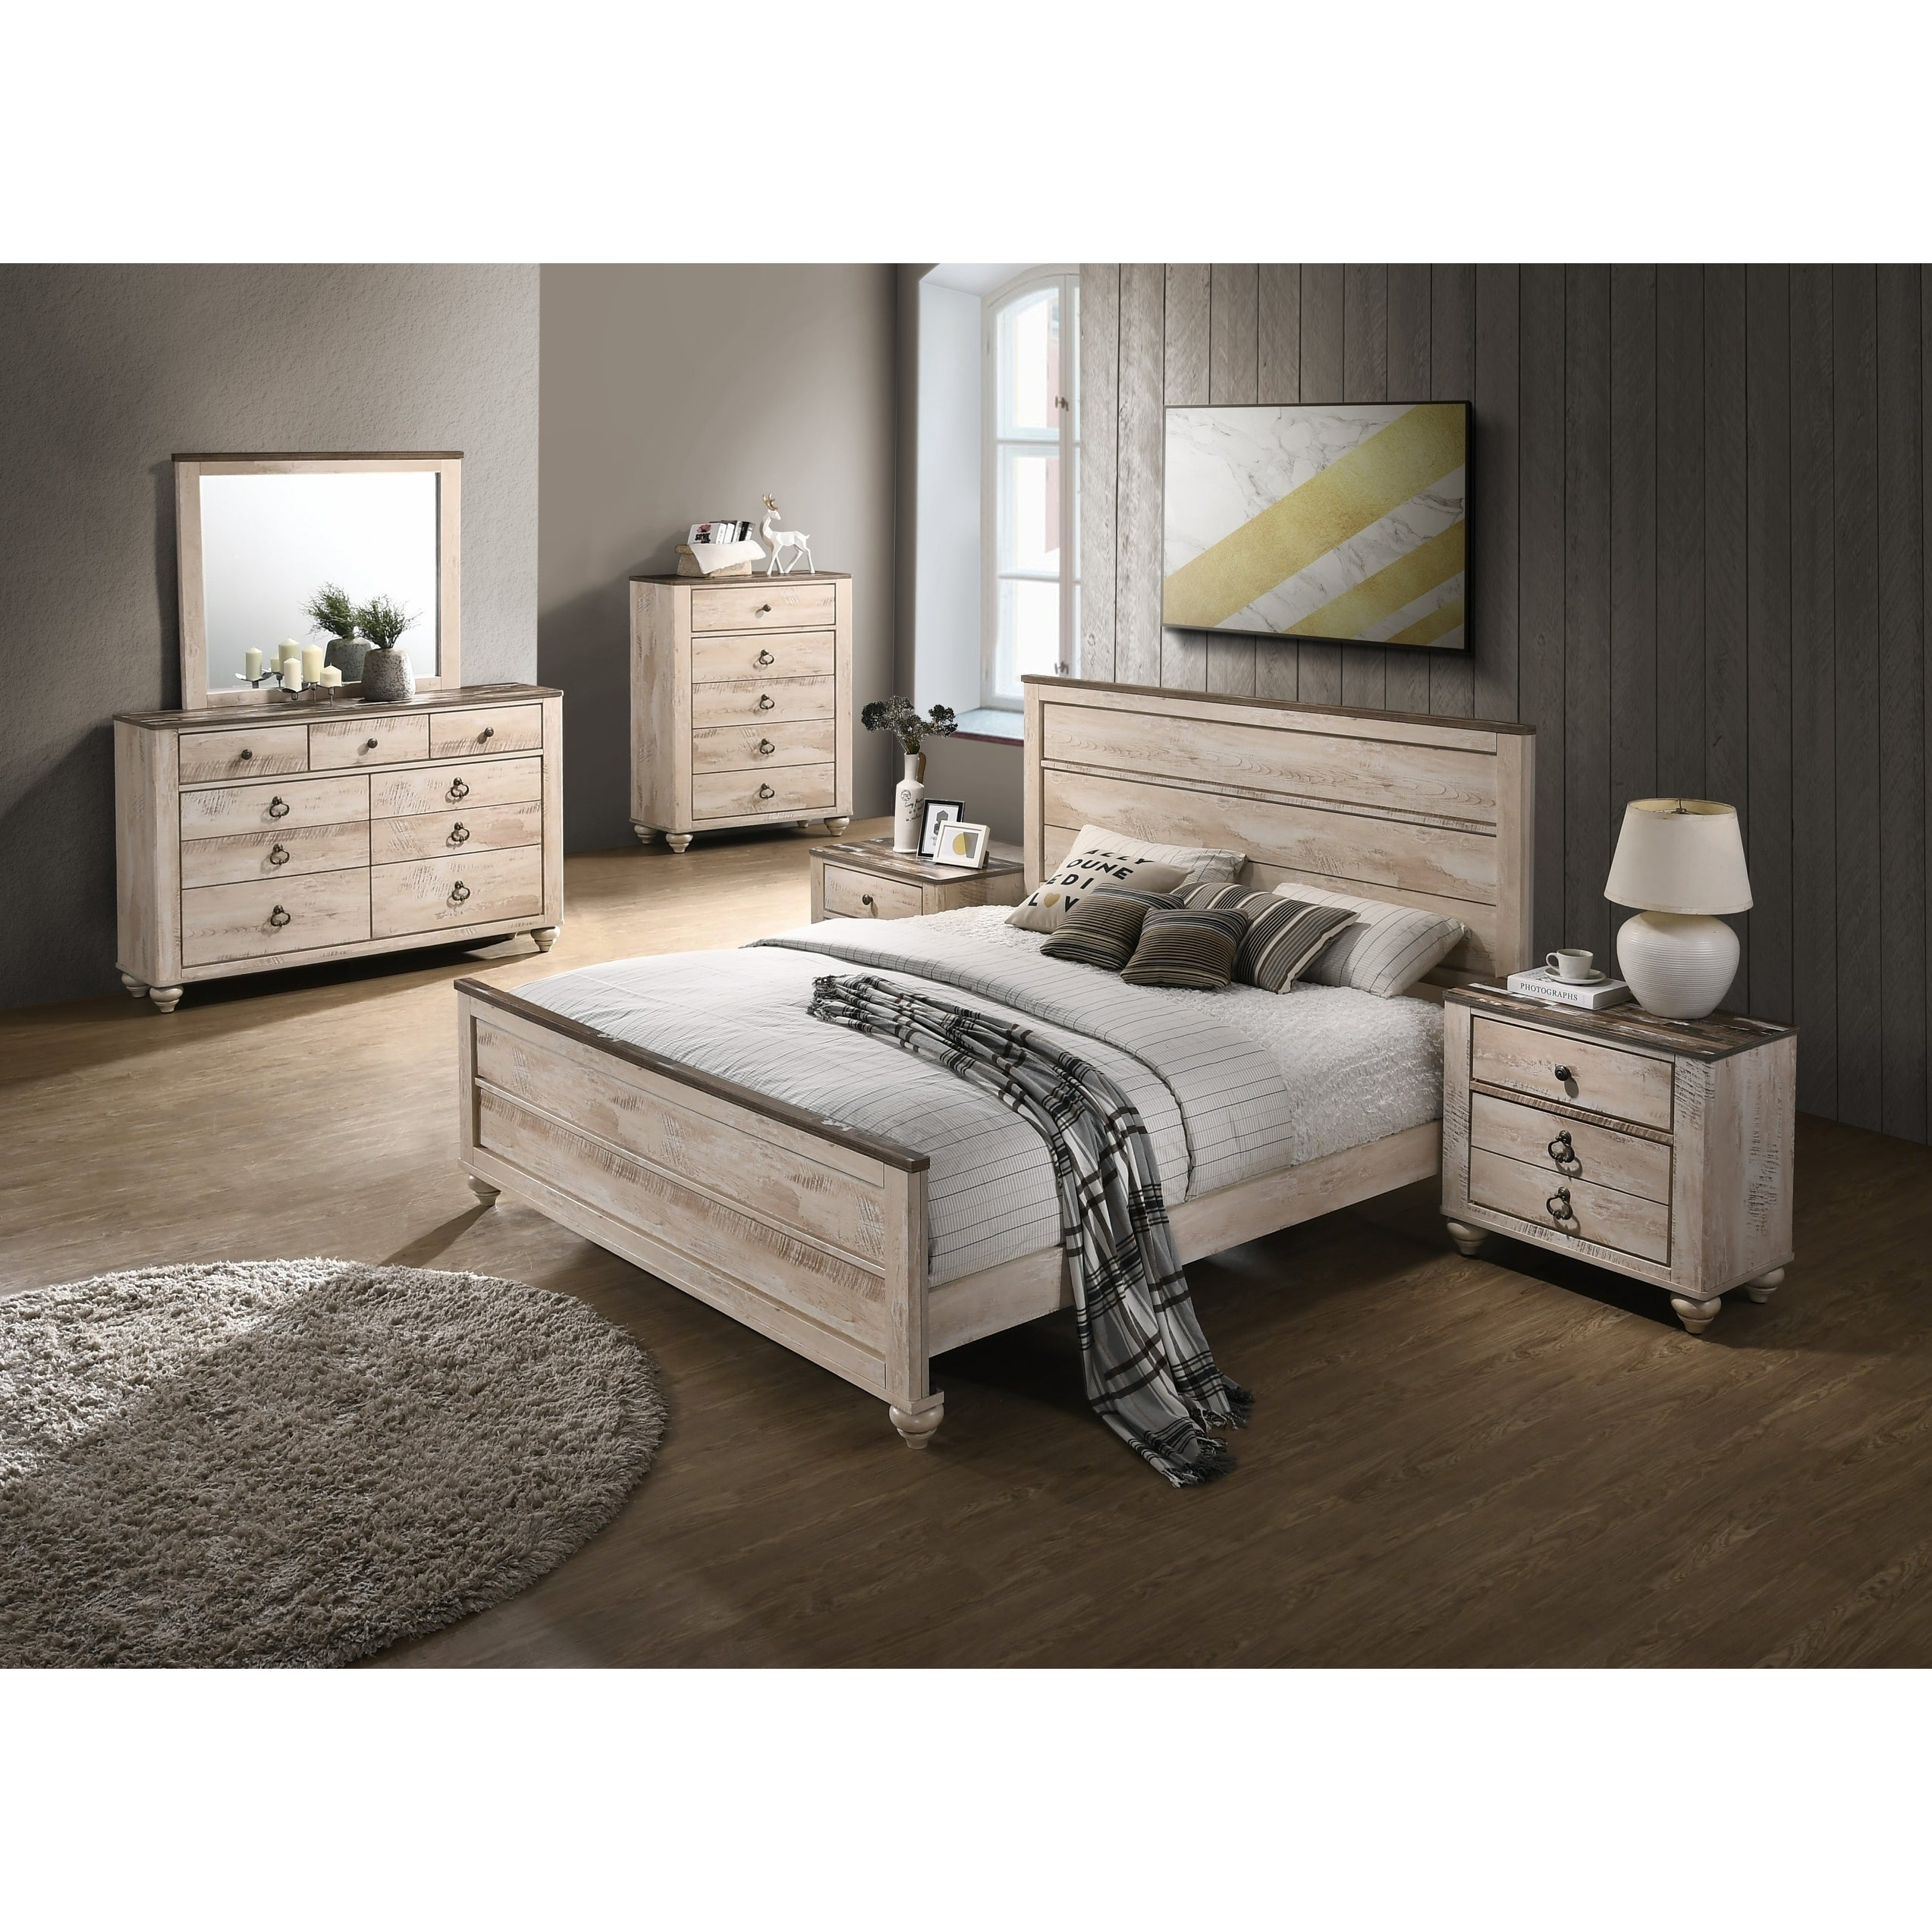 Shop Black Friday Deals On Imerland Contemporary White Wash Finish 6 Piece Bedroom Set King On Sale Overstock 19758673